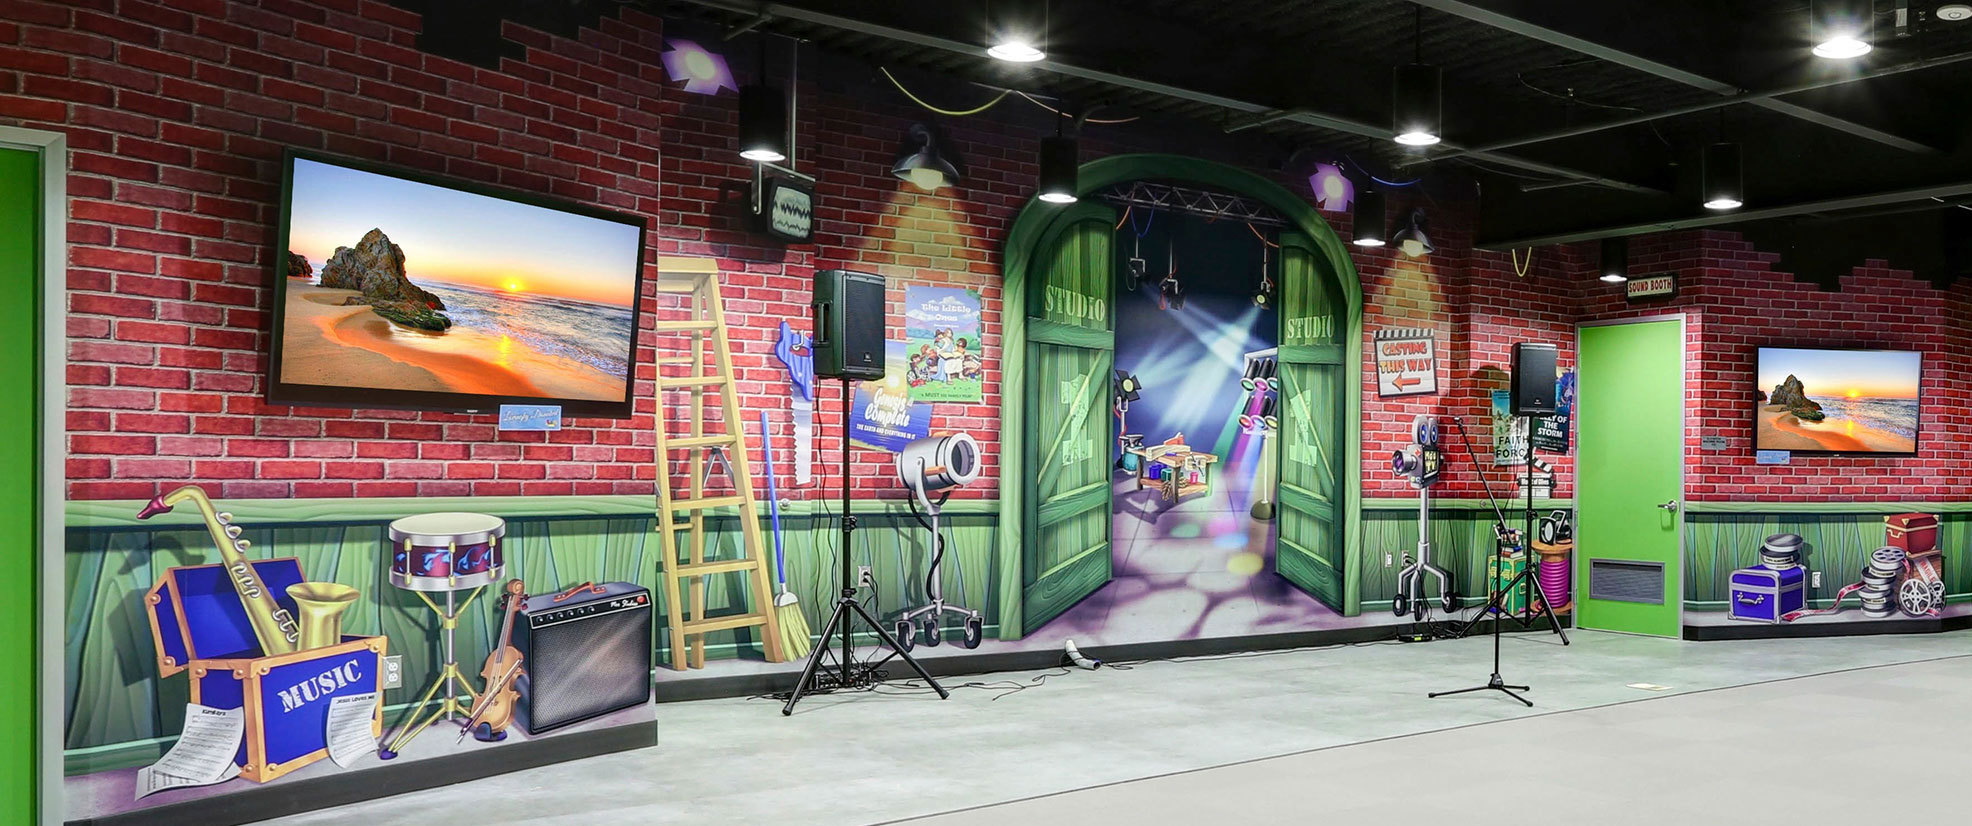 Backlot Studios Themed Wall Covering Stage Backdrop at Mount of Olives